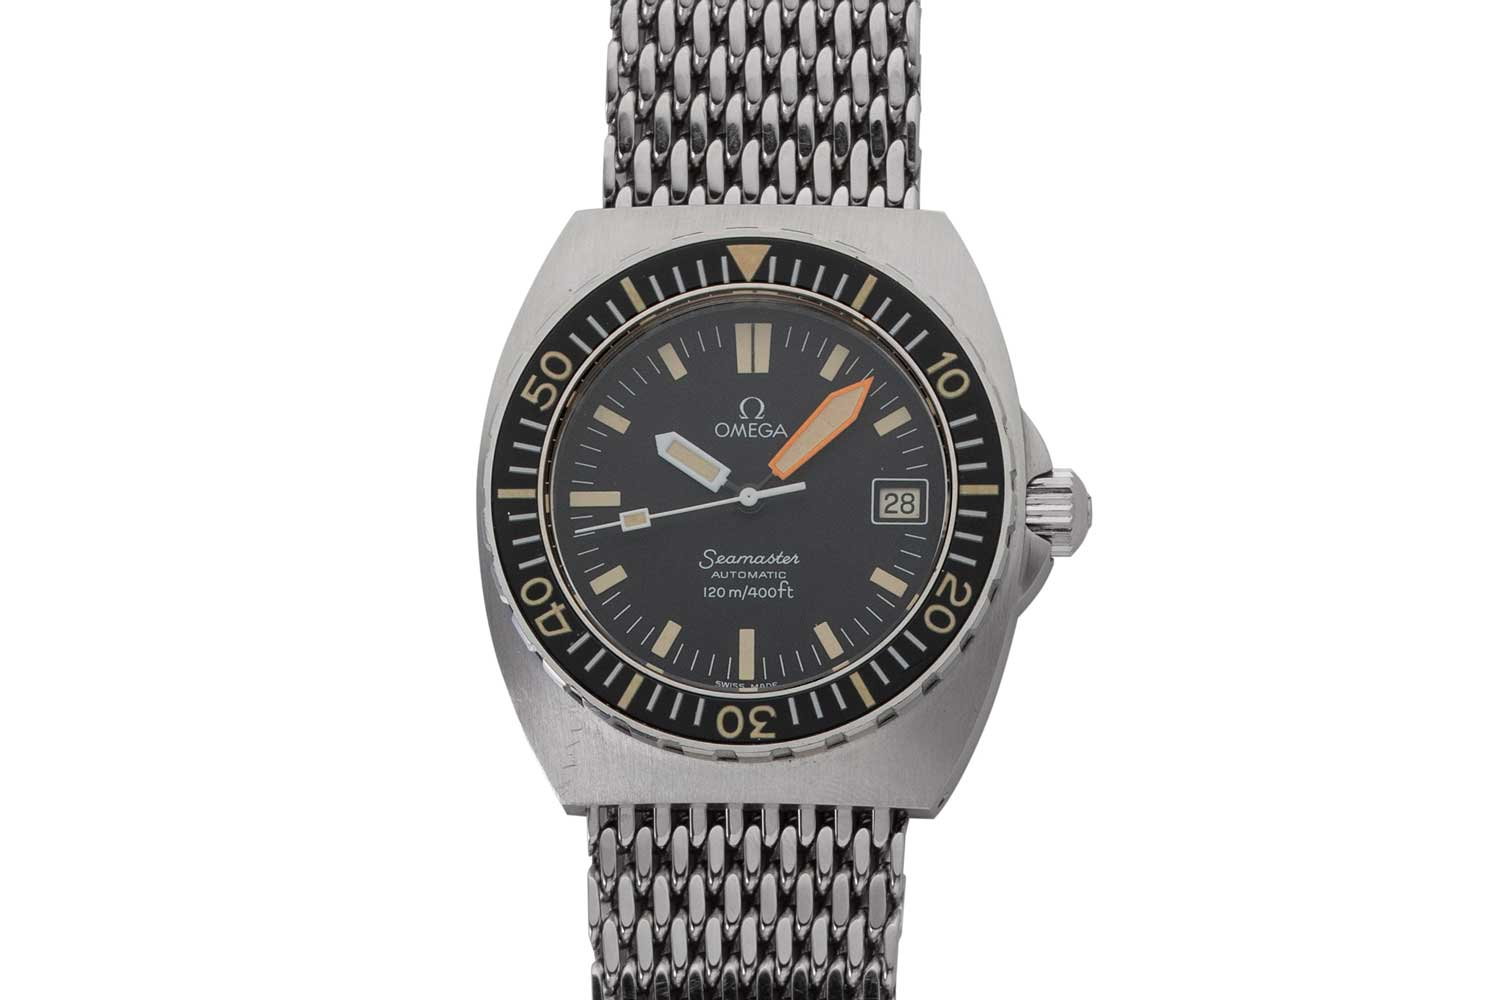 40mm Omega Seamaster 120 'Baby Proplof' with Orange Minute Hand ref. ST 166.0250, Circa mid-1970s